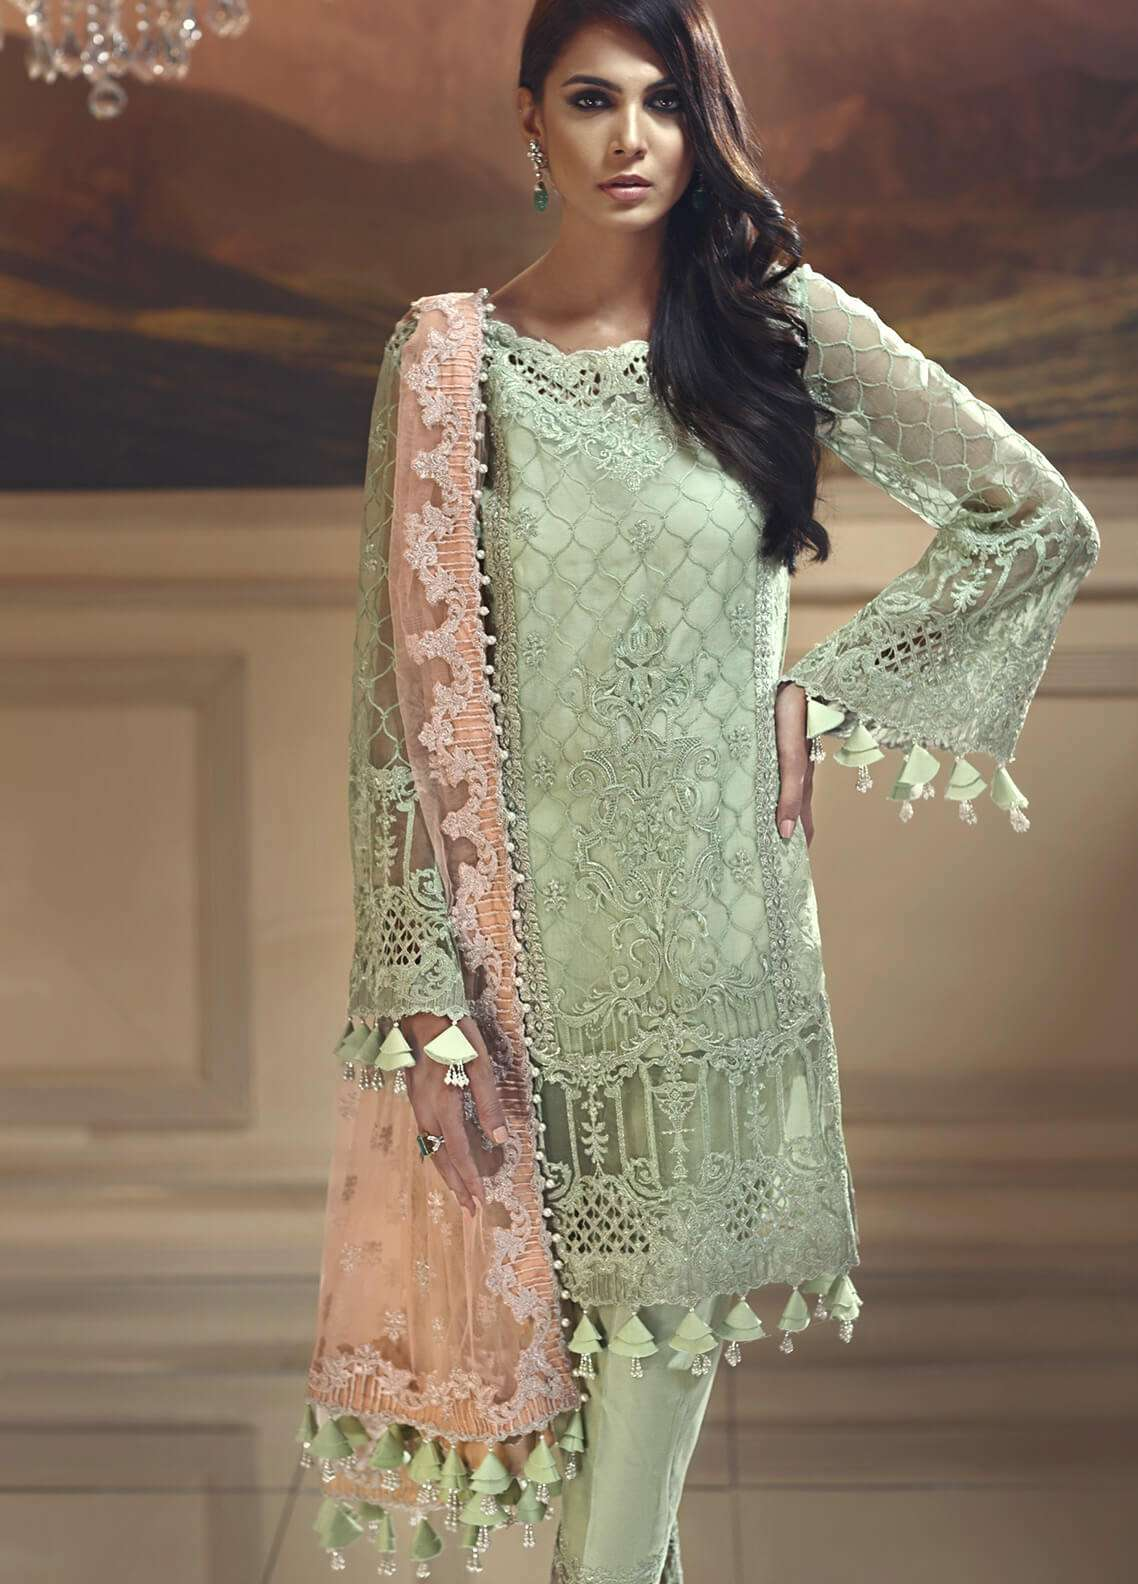 562217bd0d Anaya by Kiran Chaudhry Embroidered Organza Unstitched 3 Piece Suit AKC18W  05 - Wedding Edition